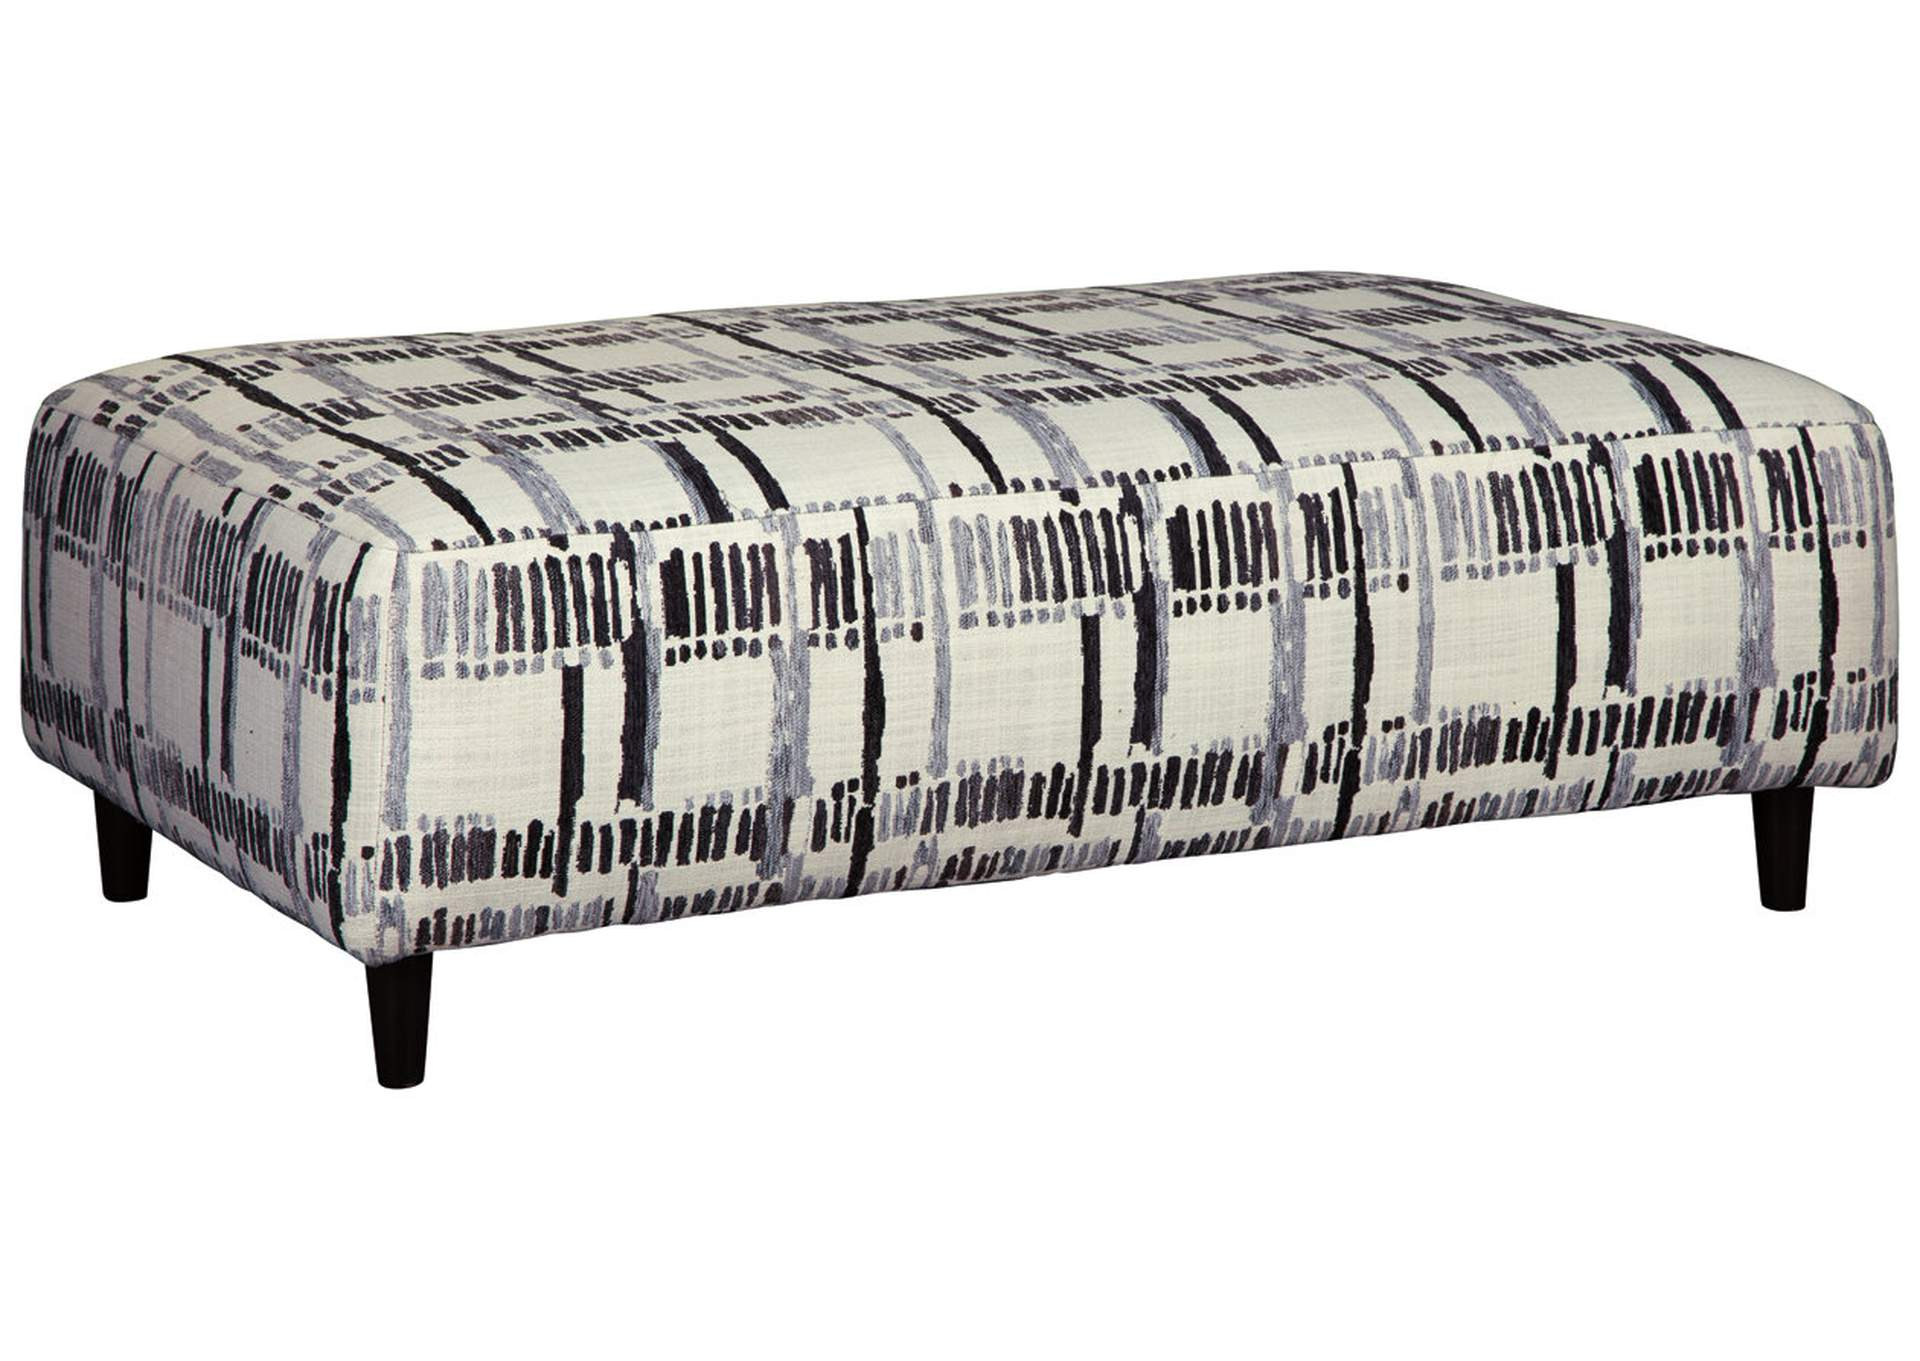 Kennewick Shadow Oversized Accent Ottoman,Signature Design By Ashley